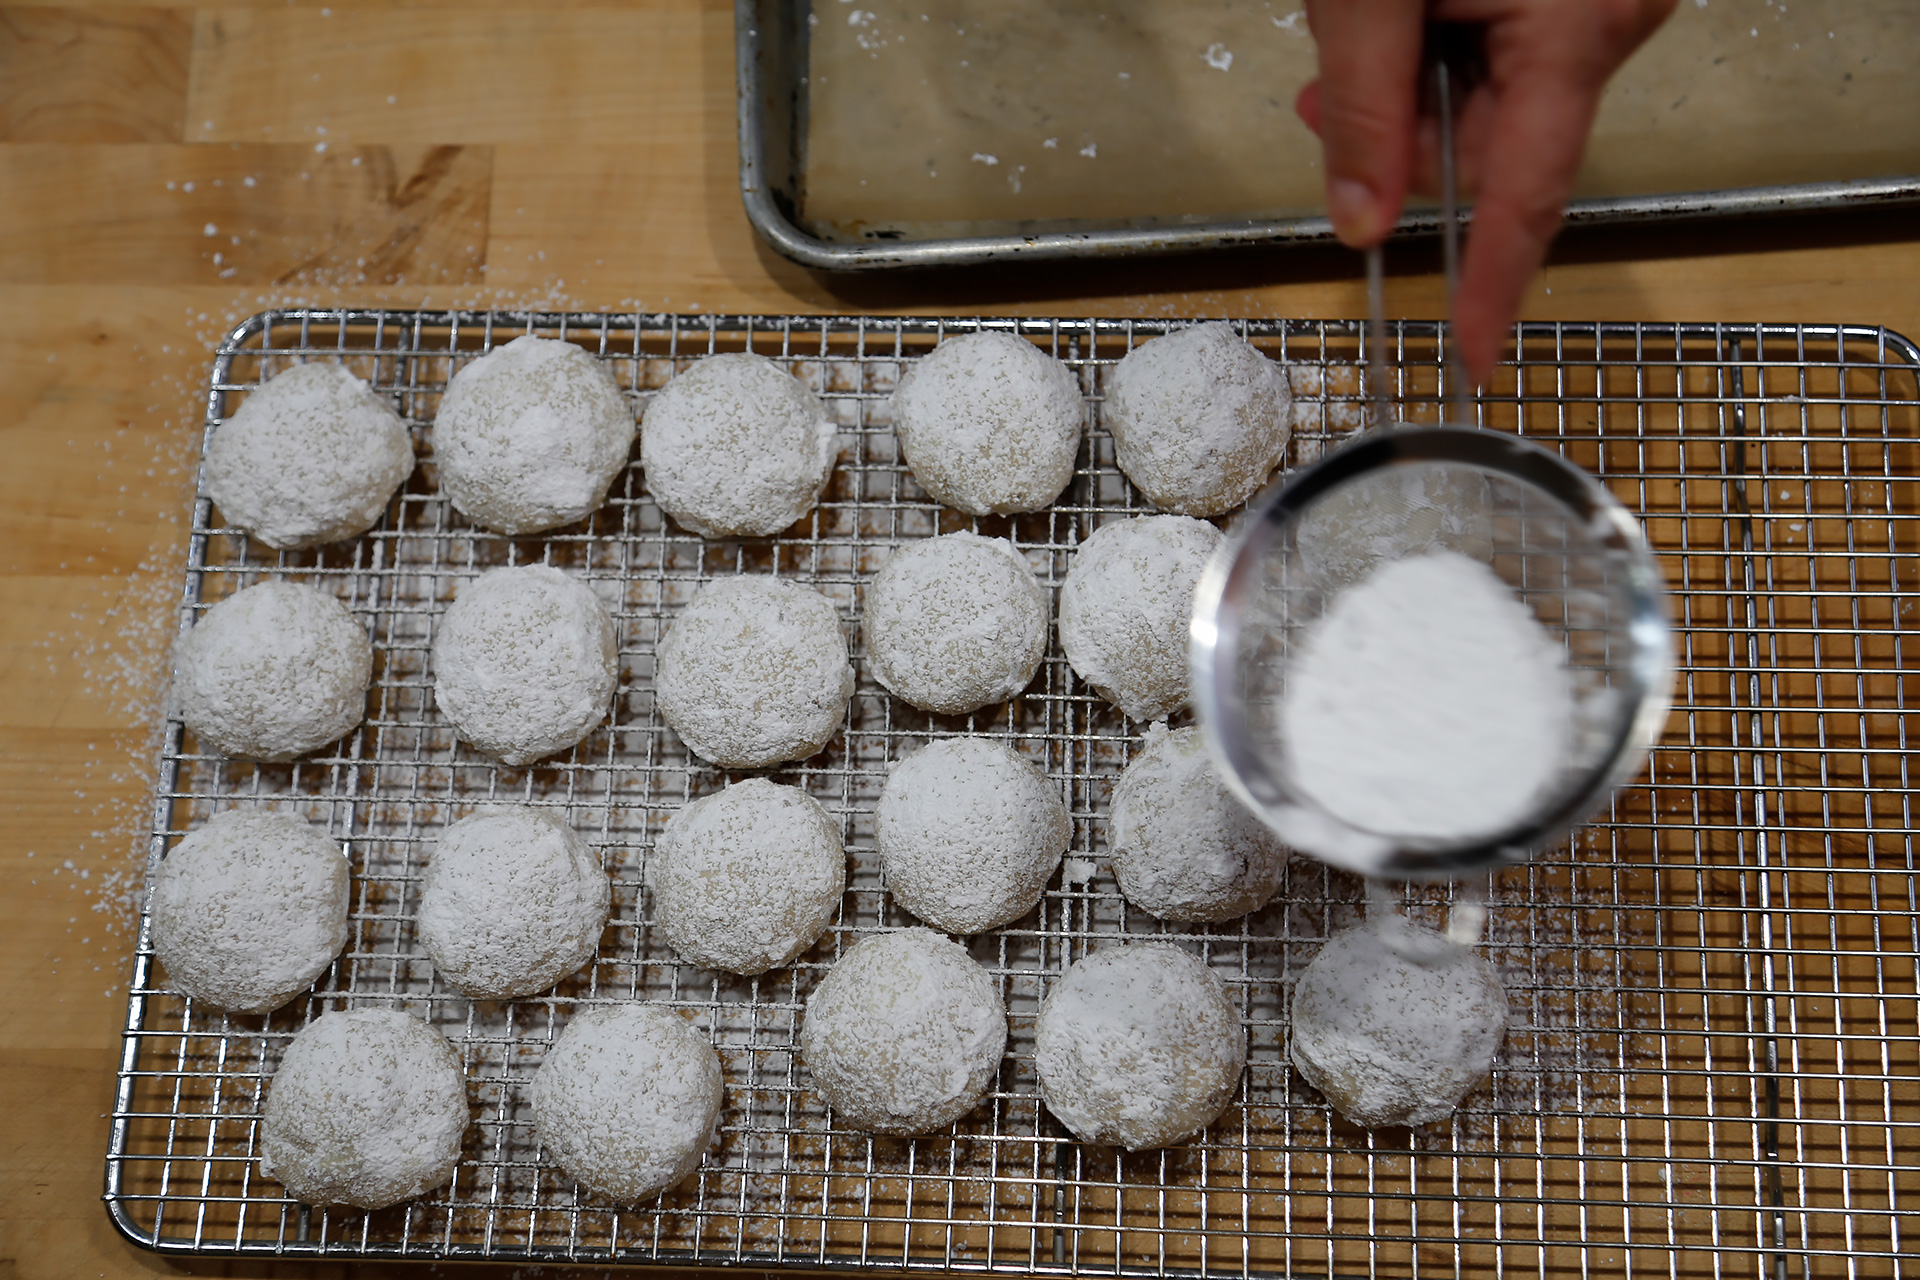 Transfer cookies to a wire rack to cool completely. If you like, dust the cookies with additional powdered sugar.